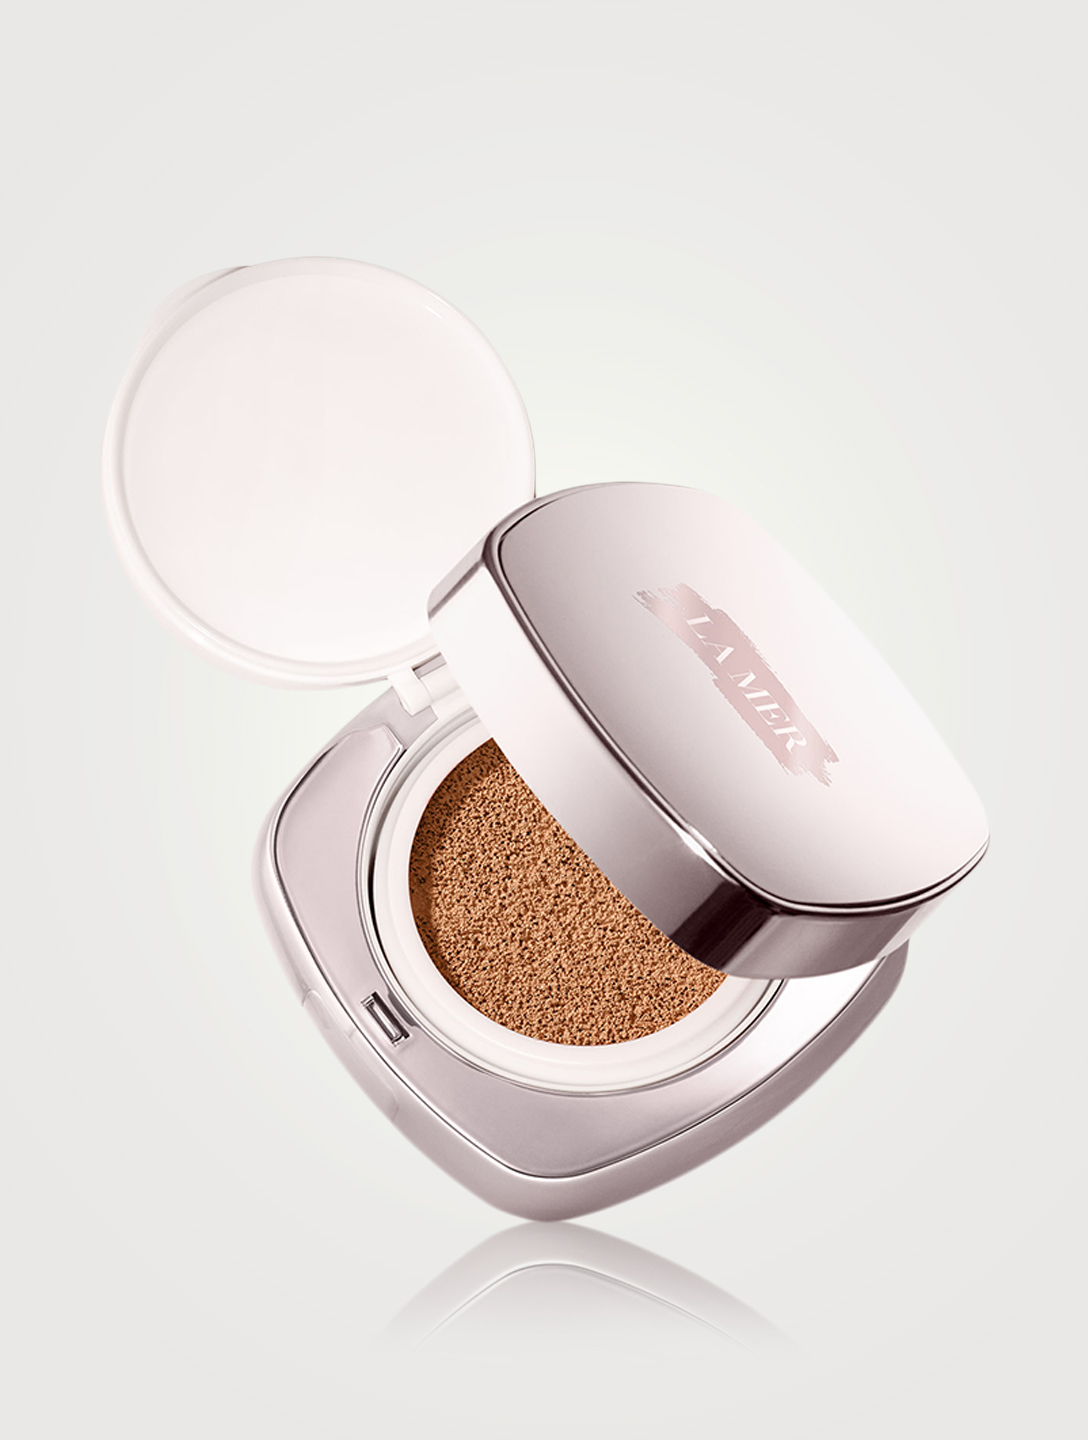 LA MER The Luminous Lifting Cushion Foundation SPF 20 Beauty Brown